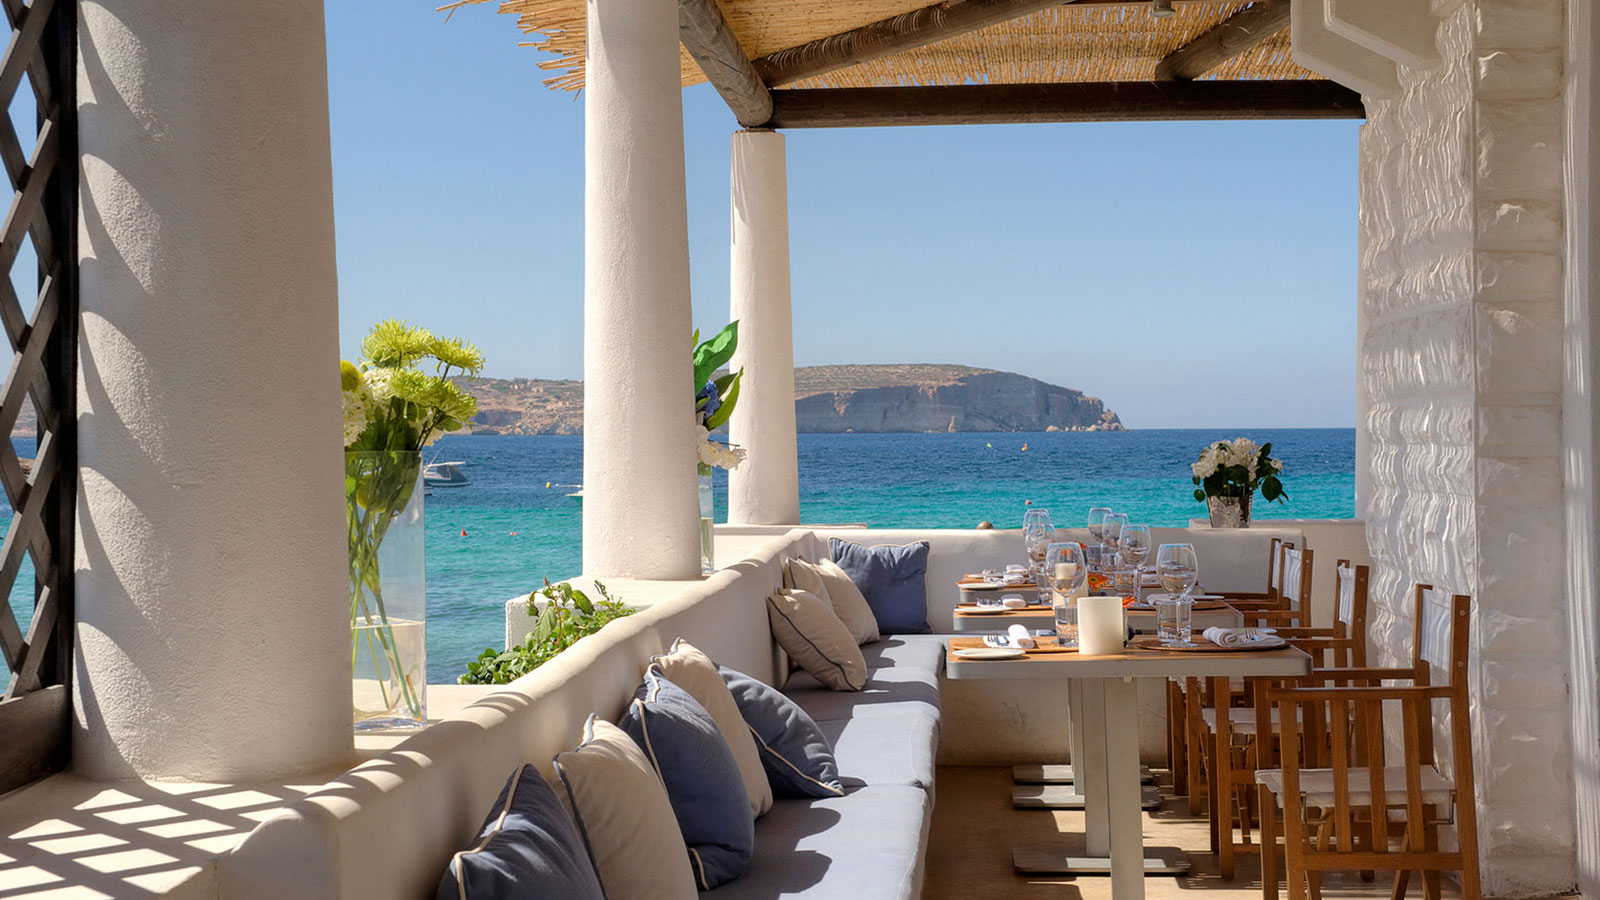 The Best Al Fresco Restaurants In Malta The Corinthia Insider